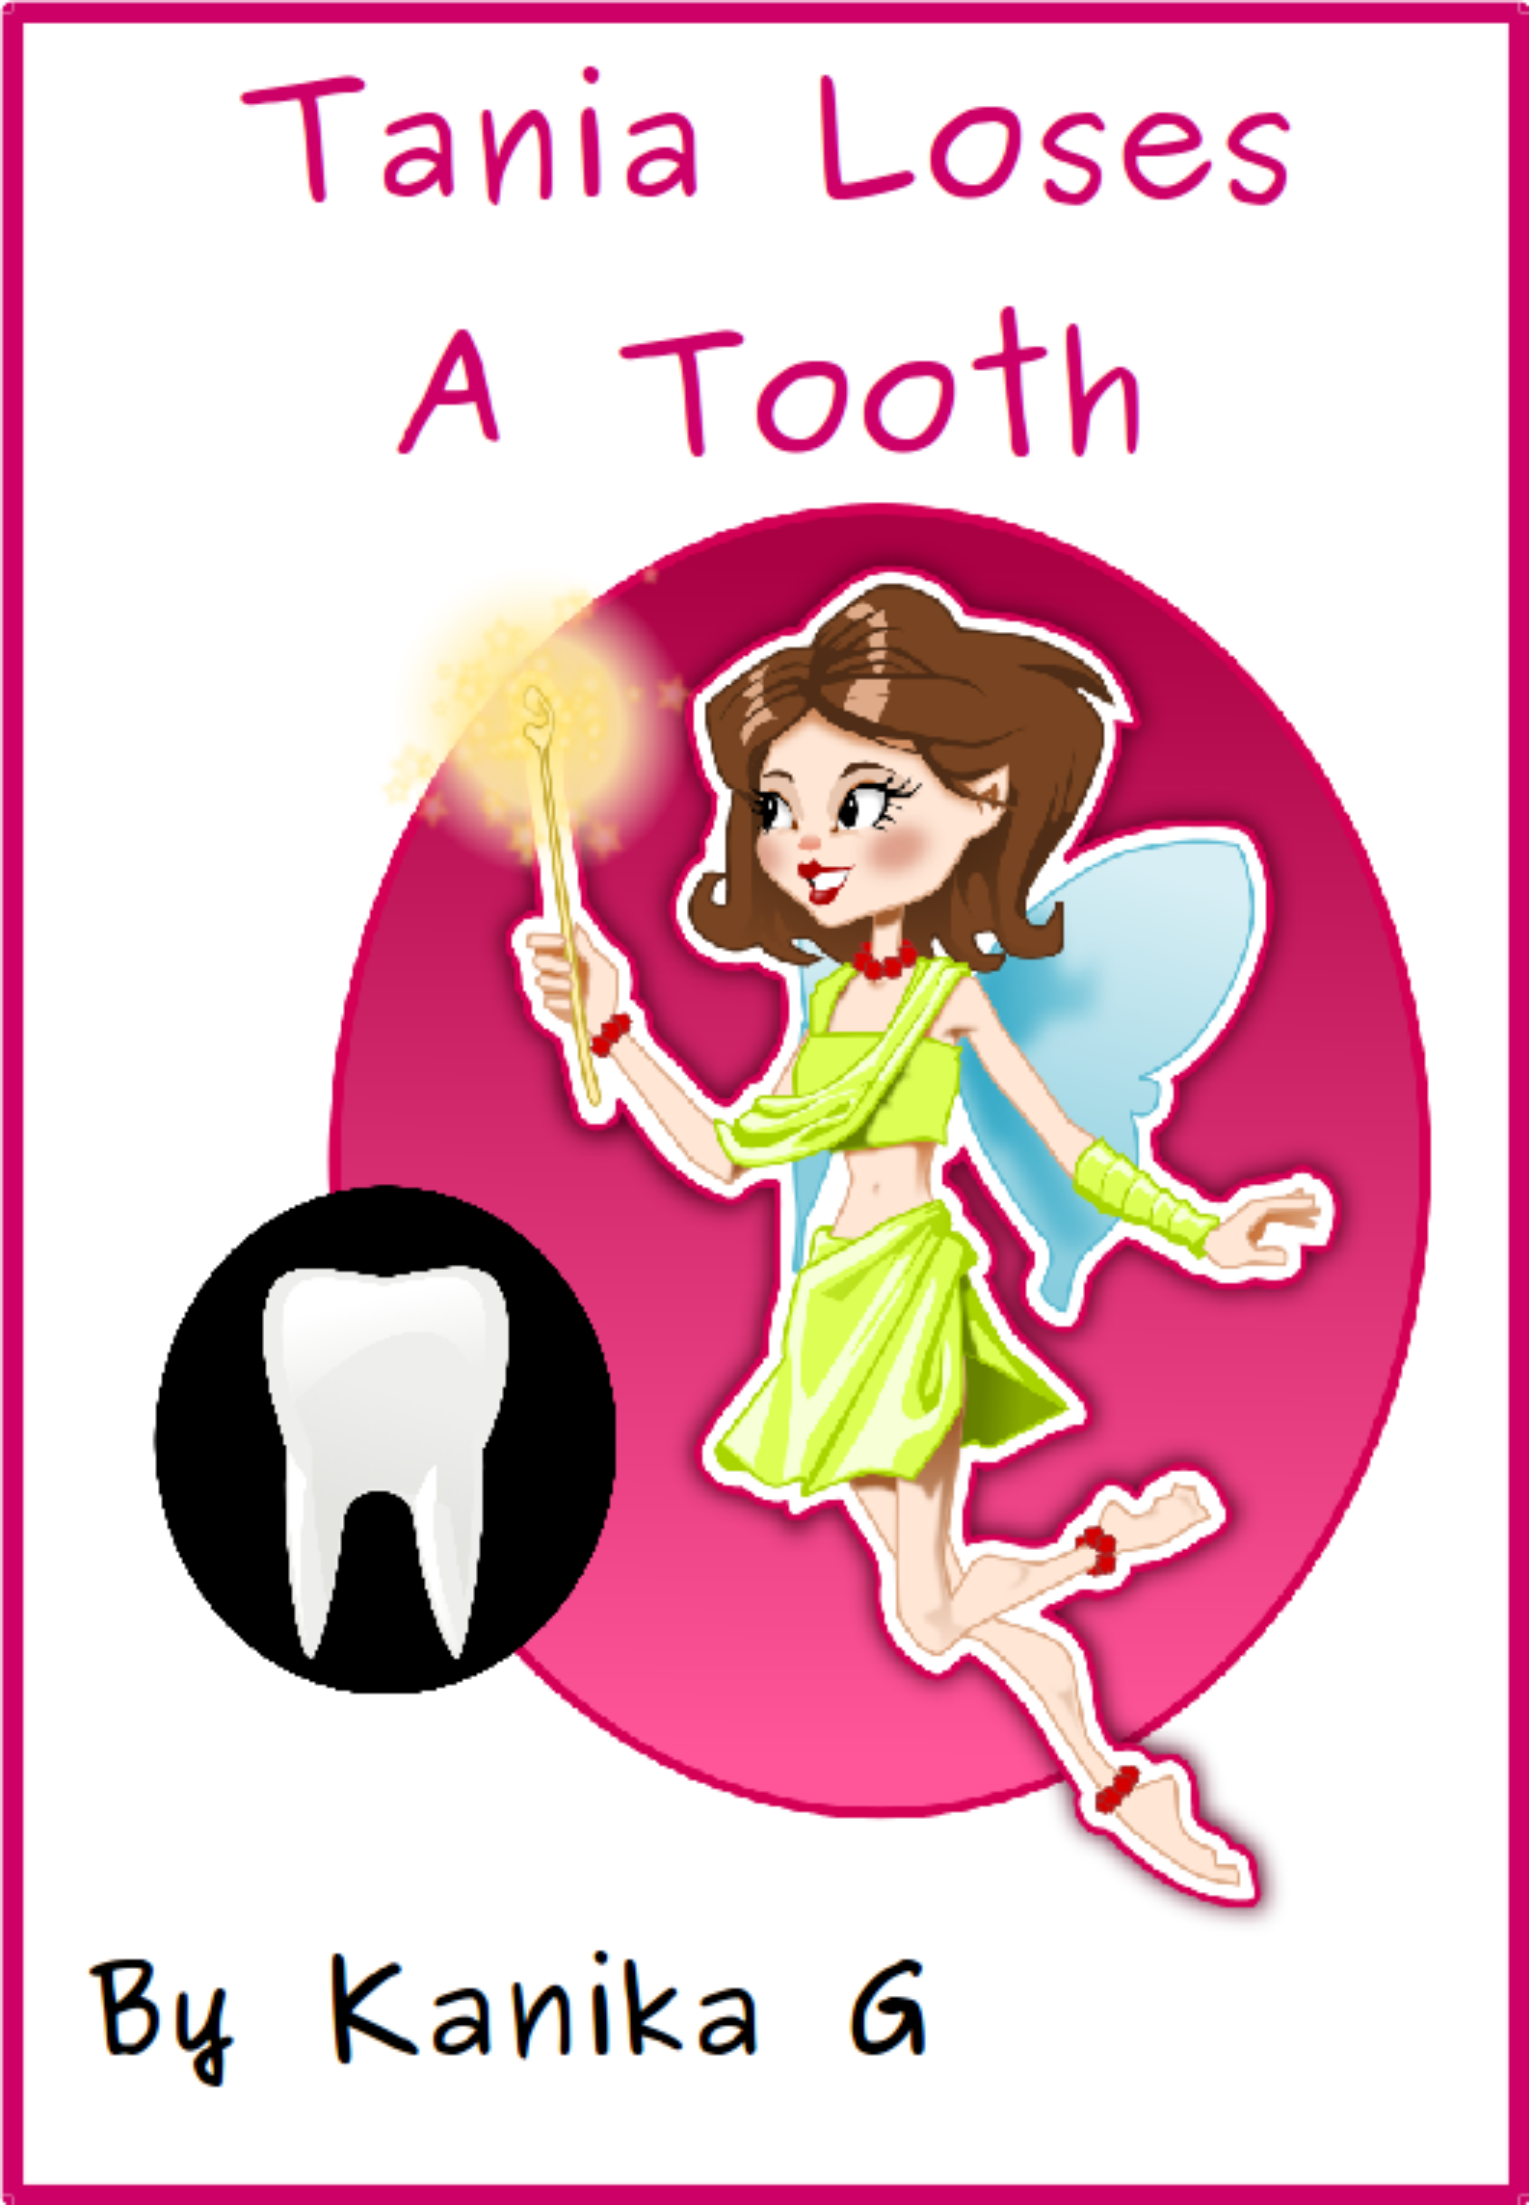 Tania Loses a Tooth by G, Kanika